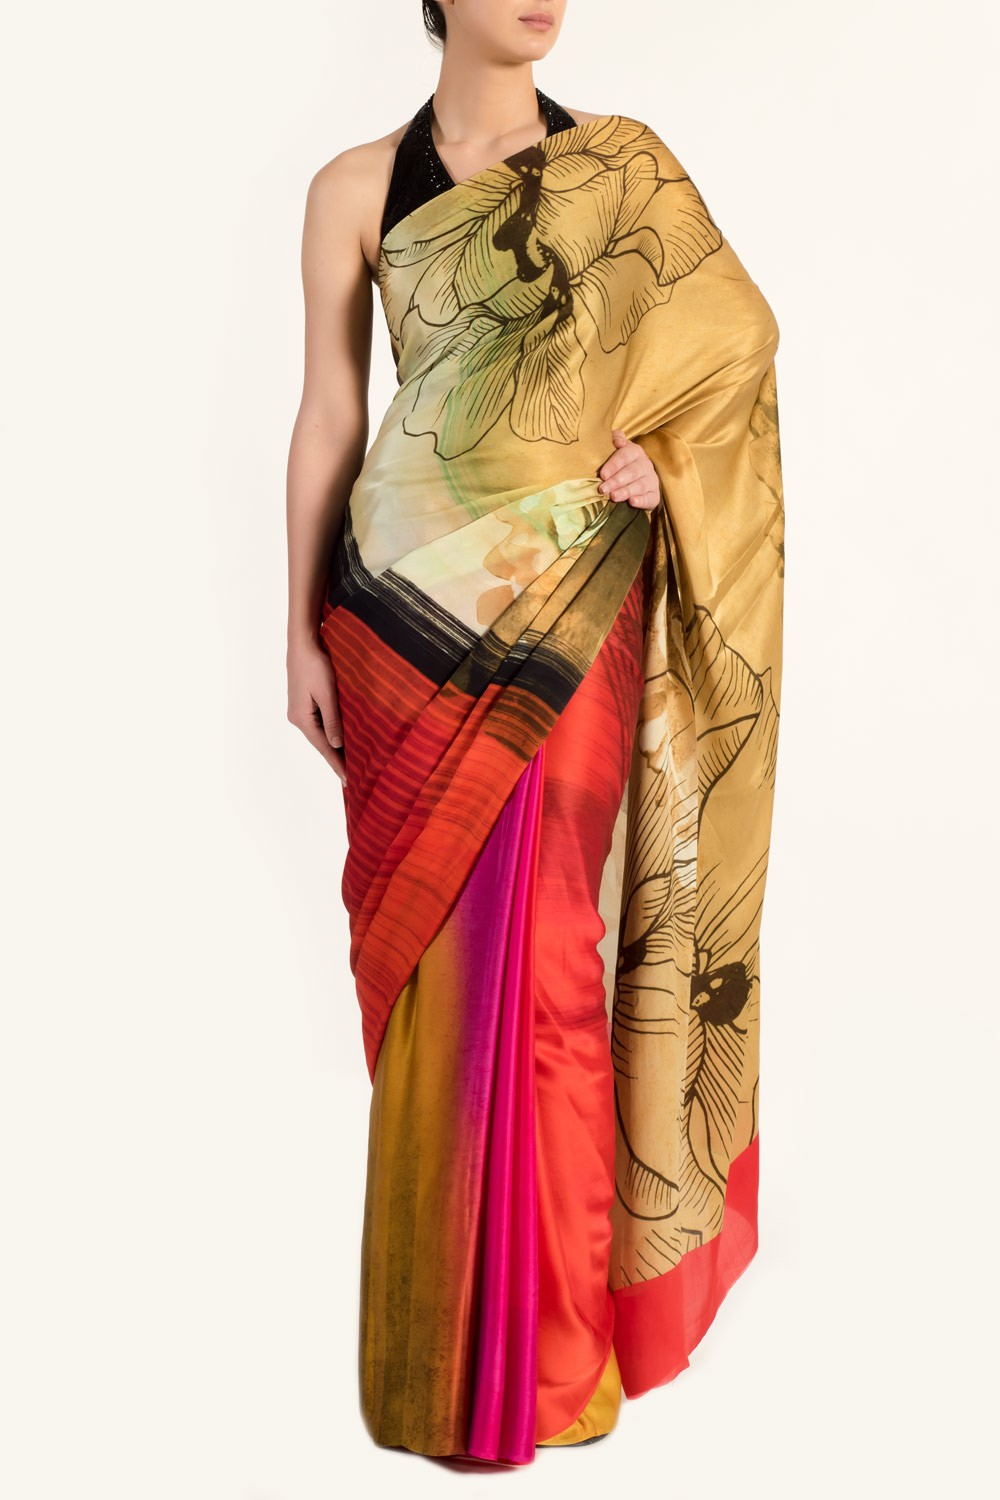 Buy digital print sarees online satya paul by satyapaul for Buy digital art online